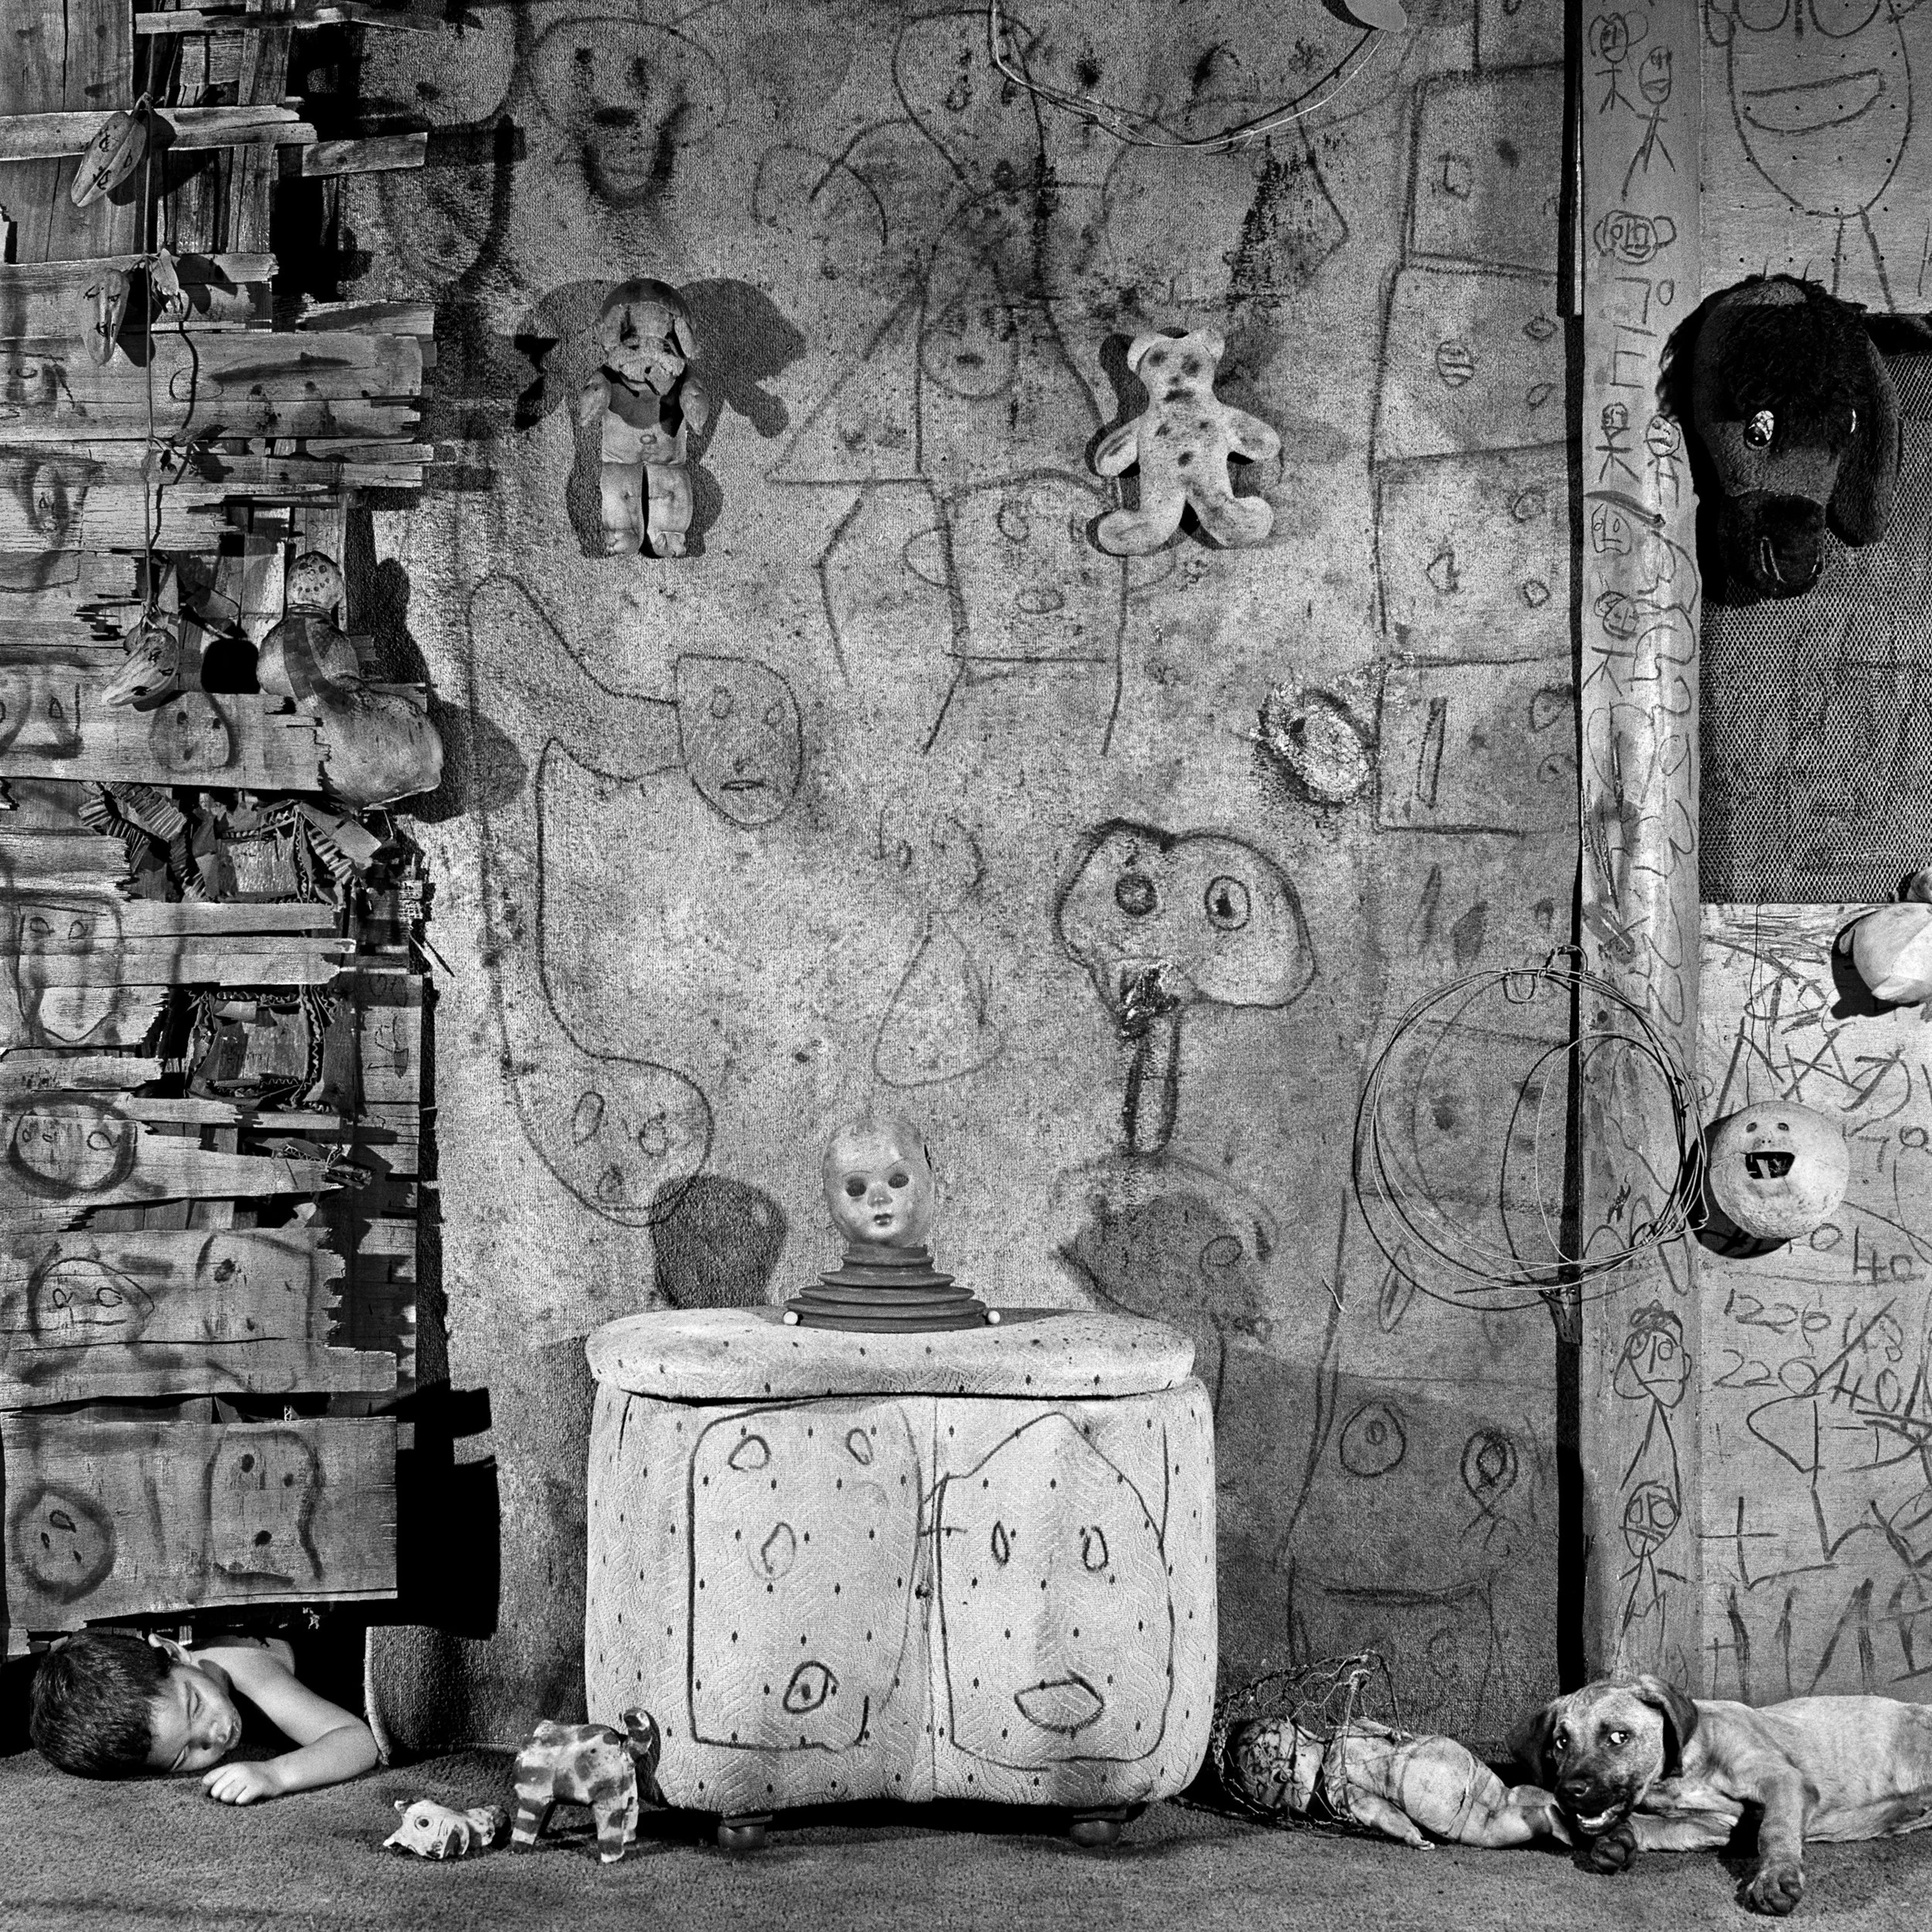 BOARDING HOUSE (2008). CREDIT: ROGER BALLEN